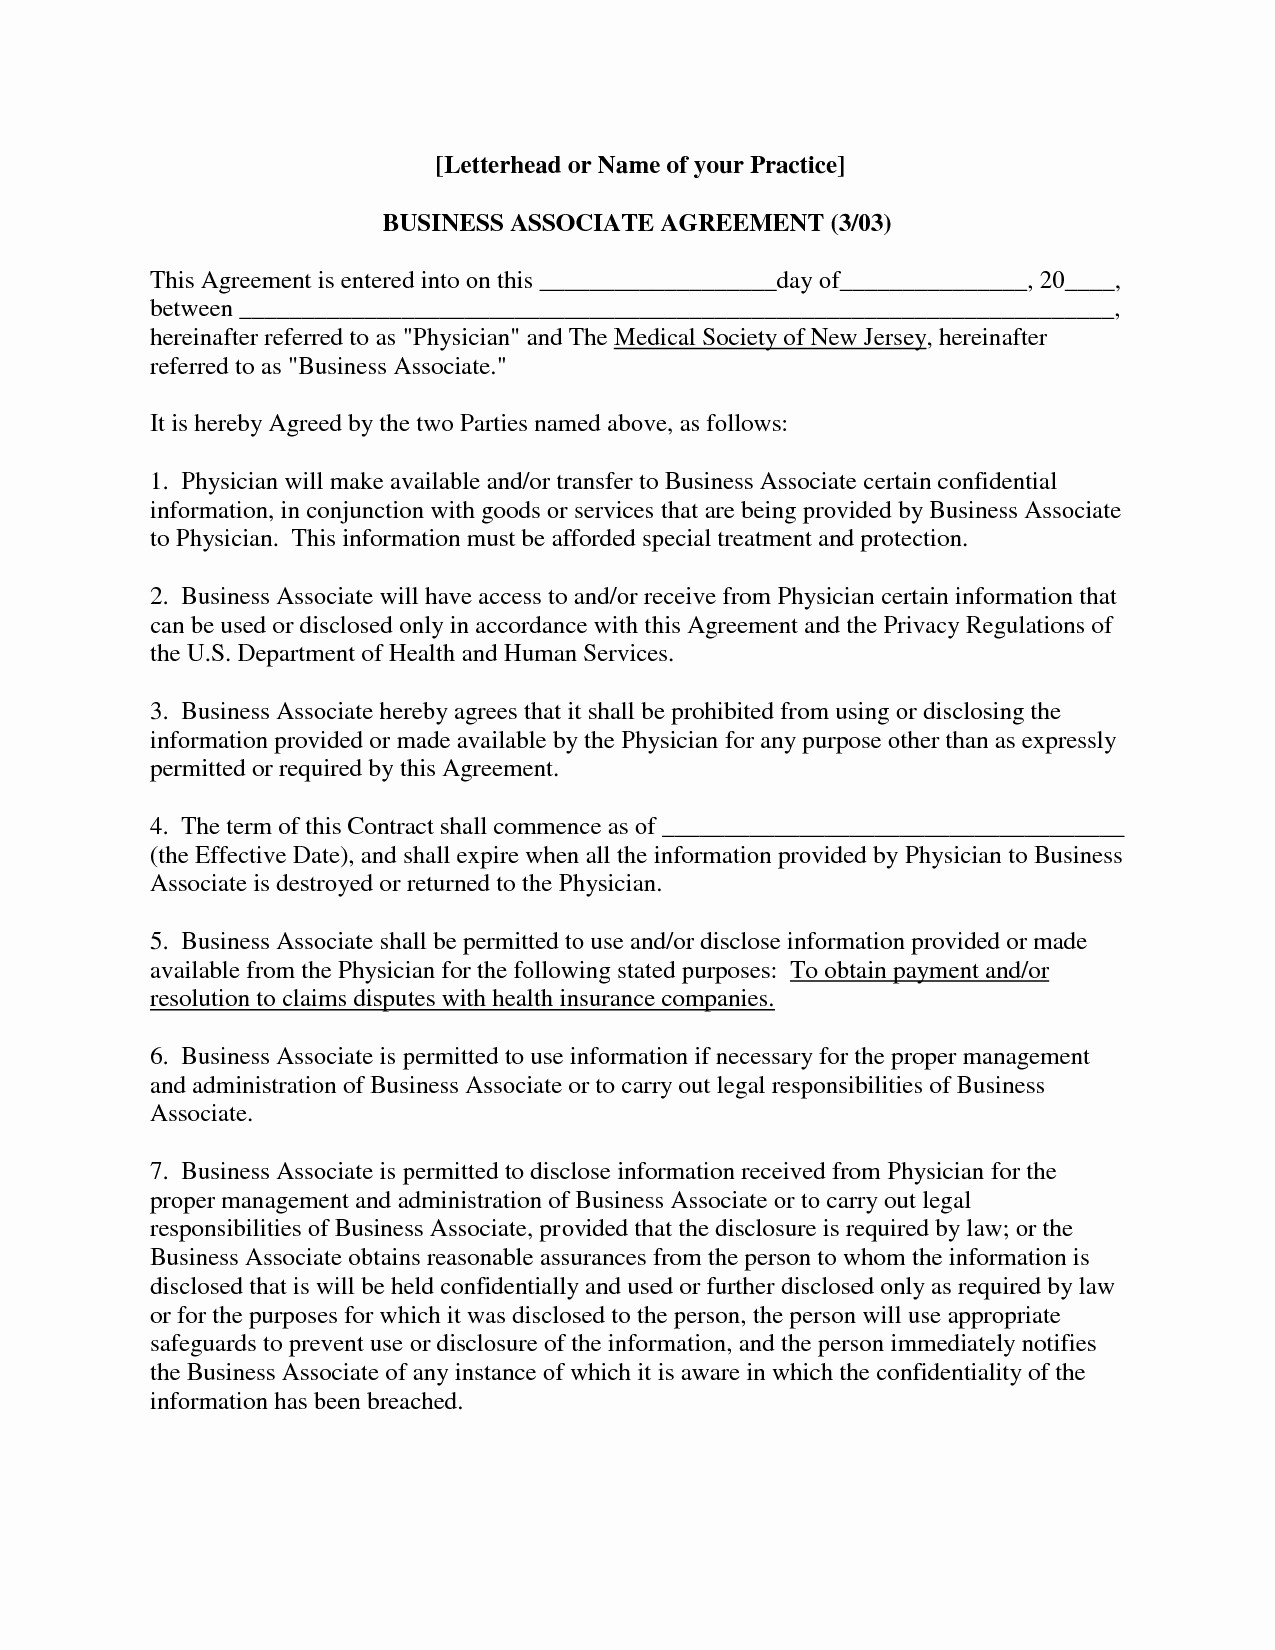 Business Associate Agreement Template 2019